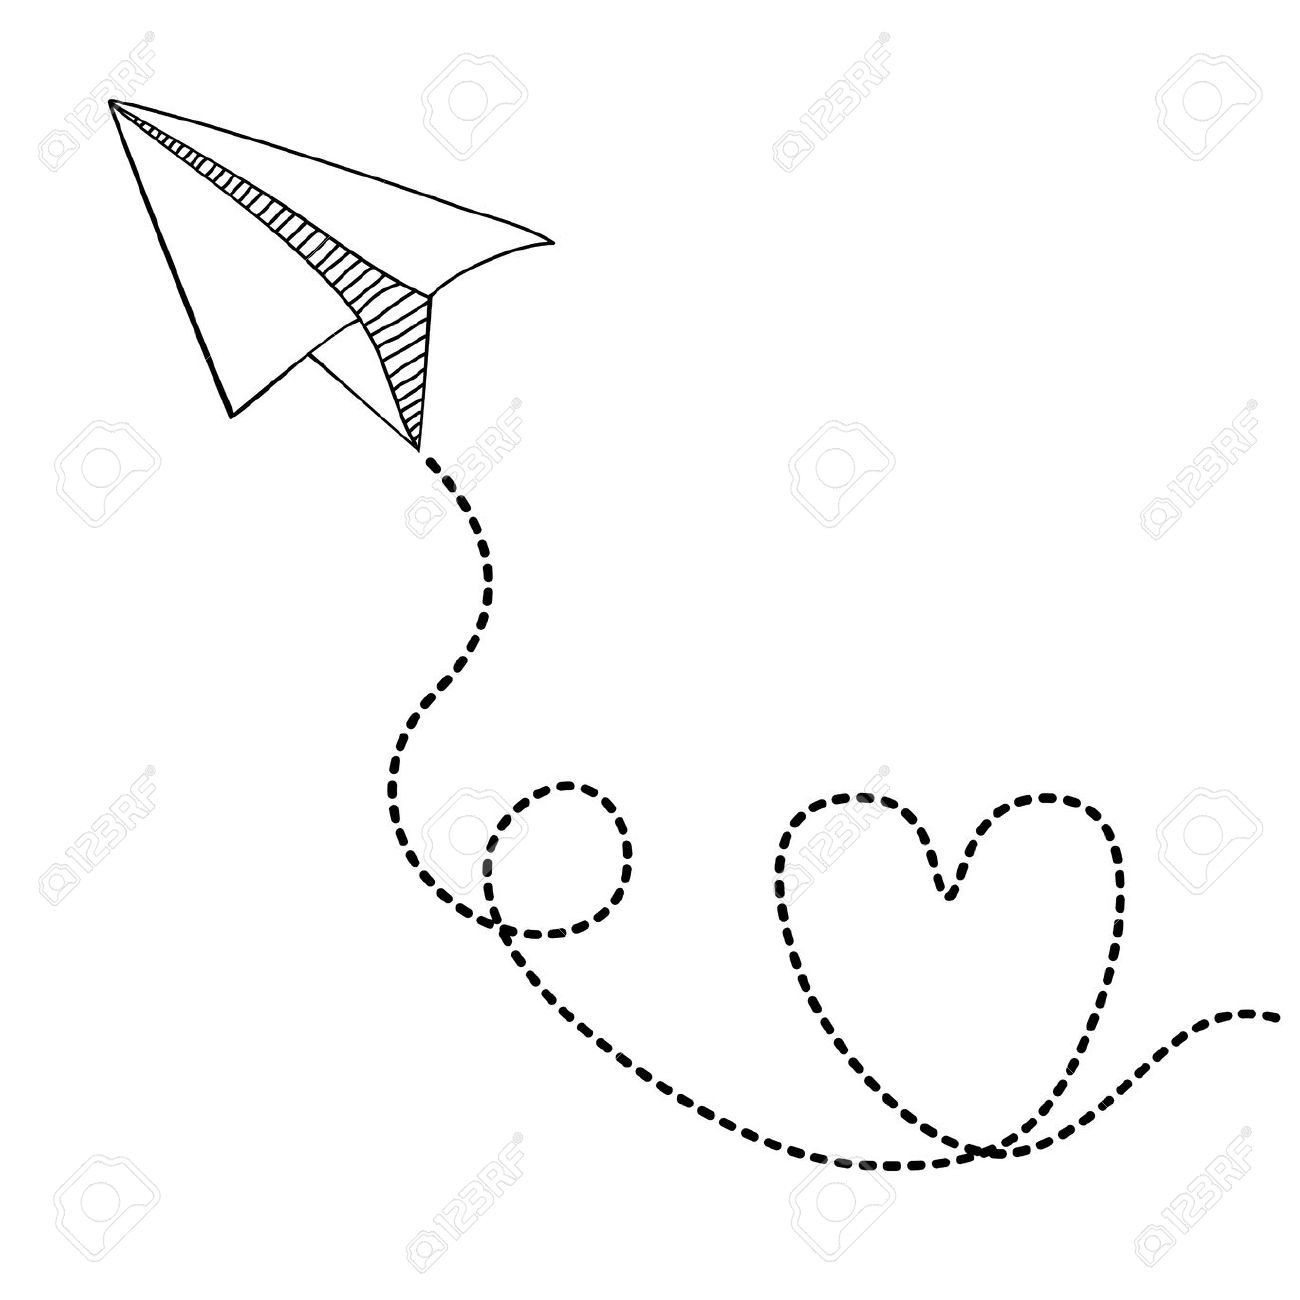 Paper Plane Drawing Tumblr Airplanes Drawings